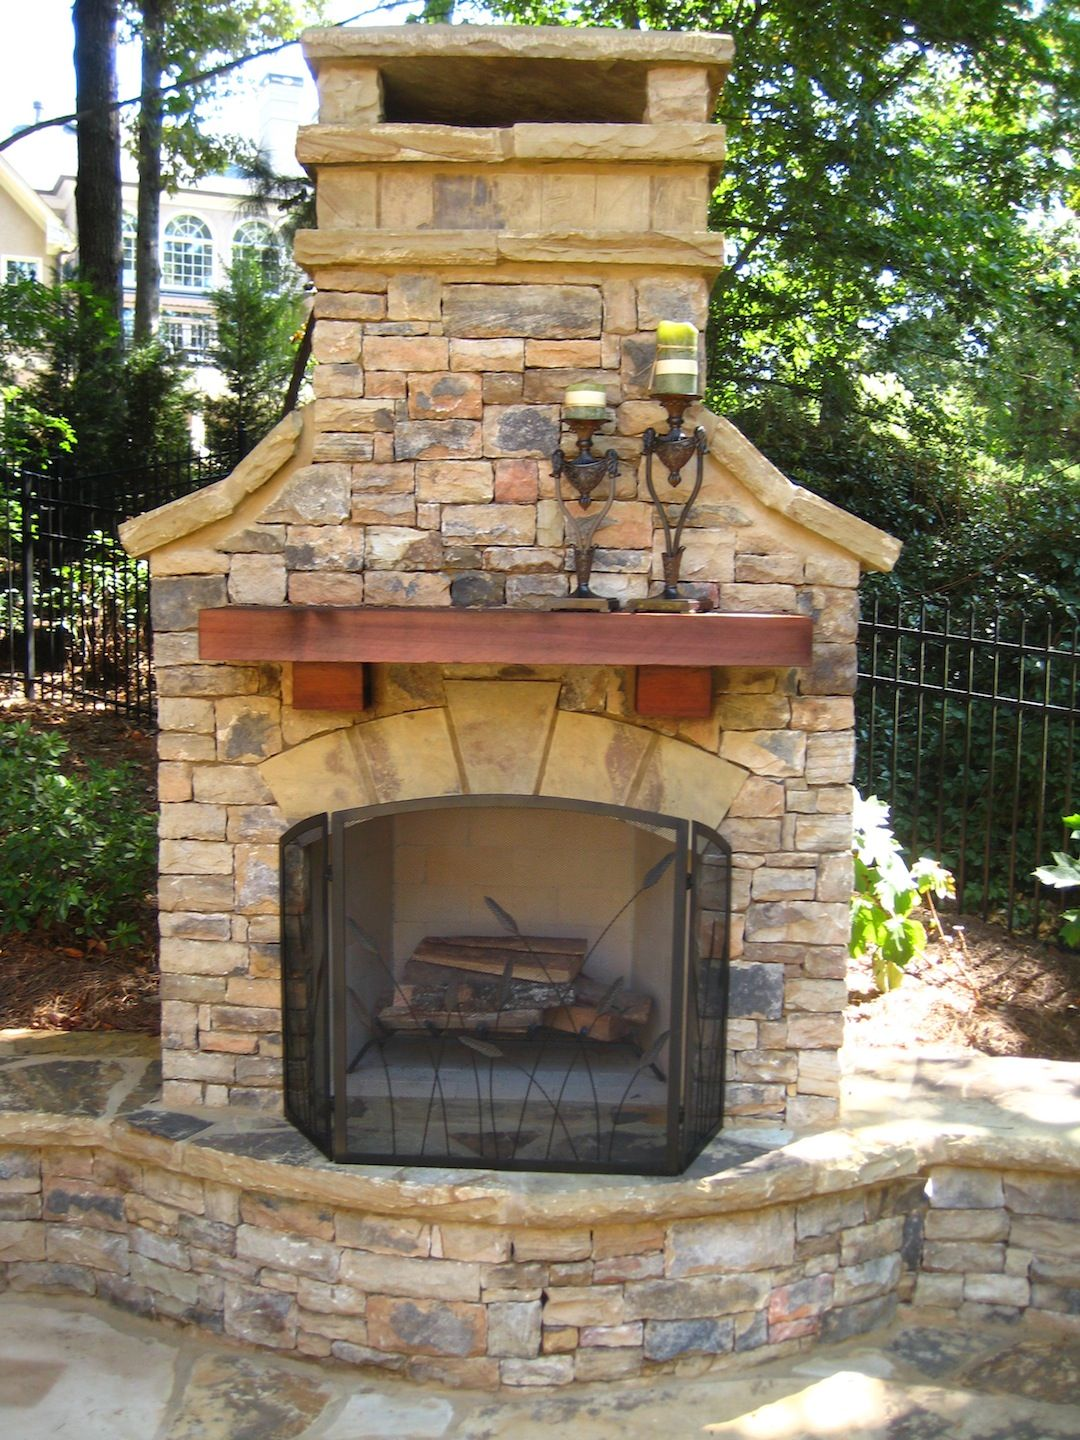 Outdoor Fireplace With Wood Mantel And Seating Wall Outdoor